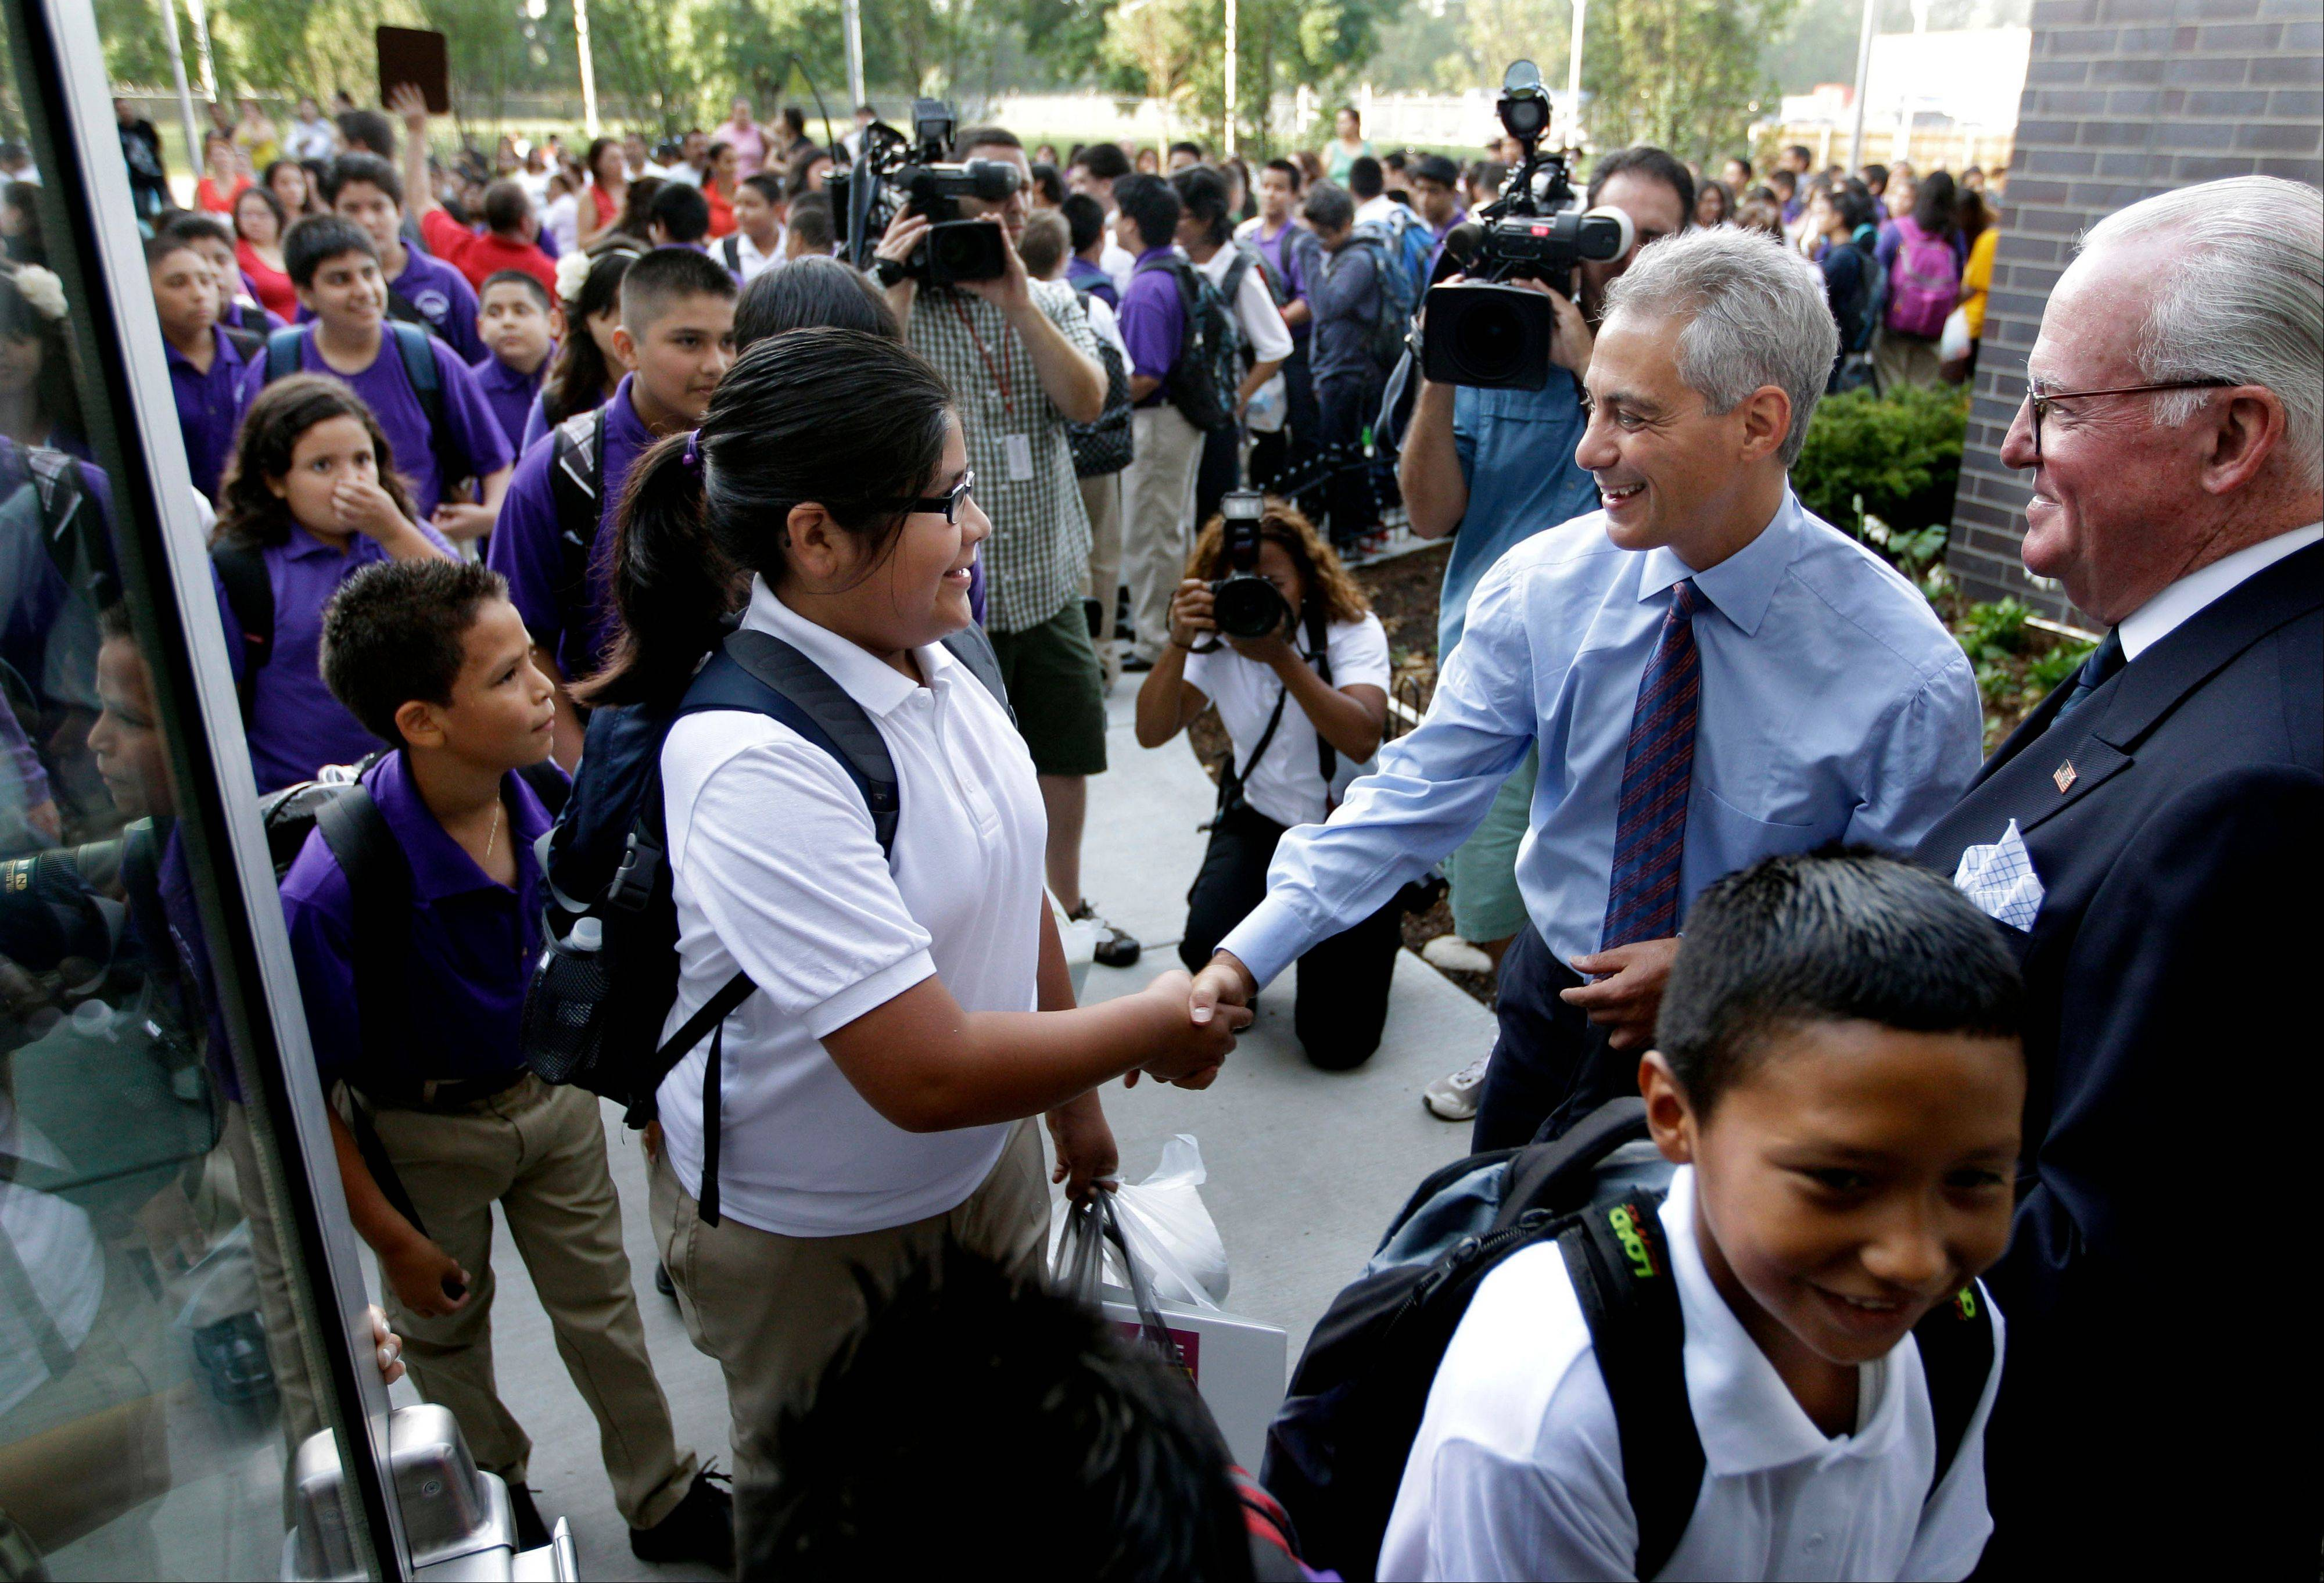 Chicago Mayor Rahm Emanuel and Alderman Ed Burke greet students Tuesday as they enter Shields Middle School on their first day back to school in Chicago.